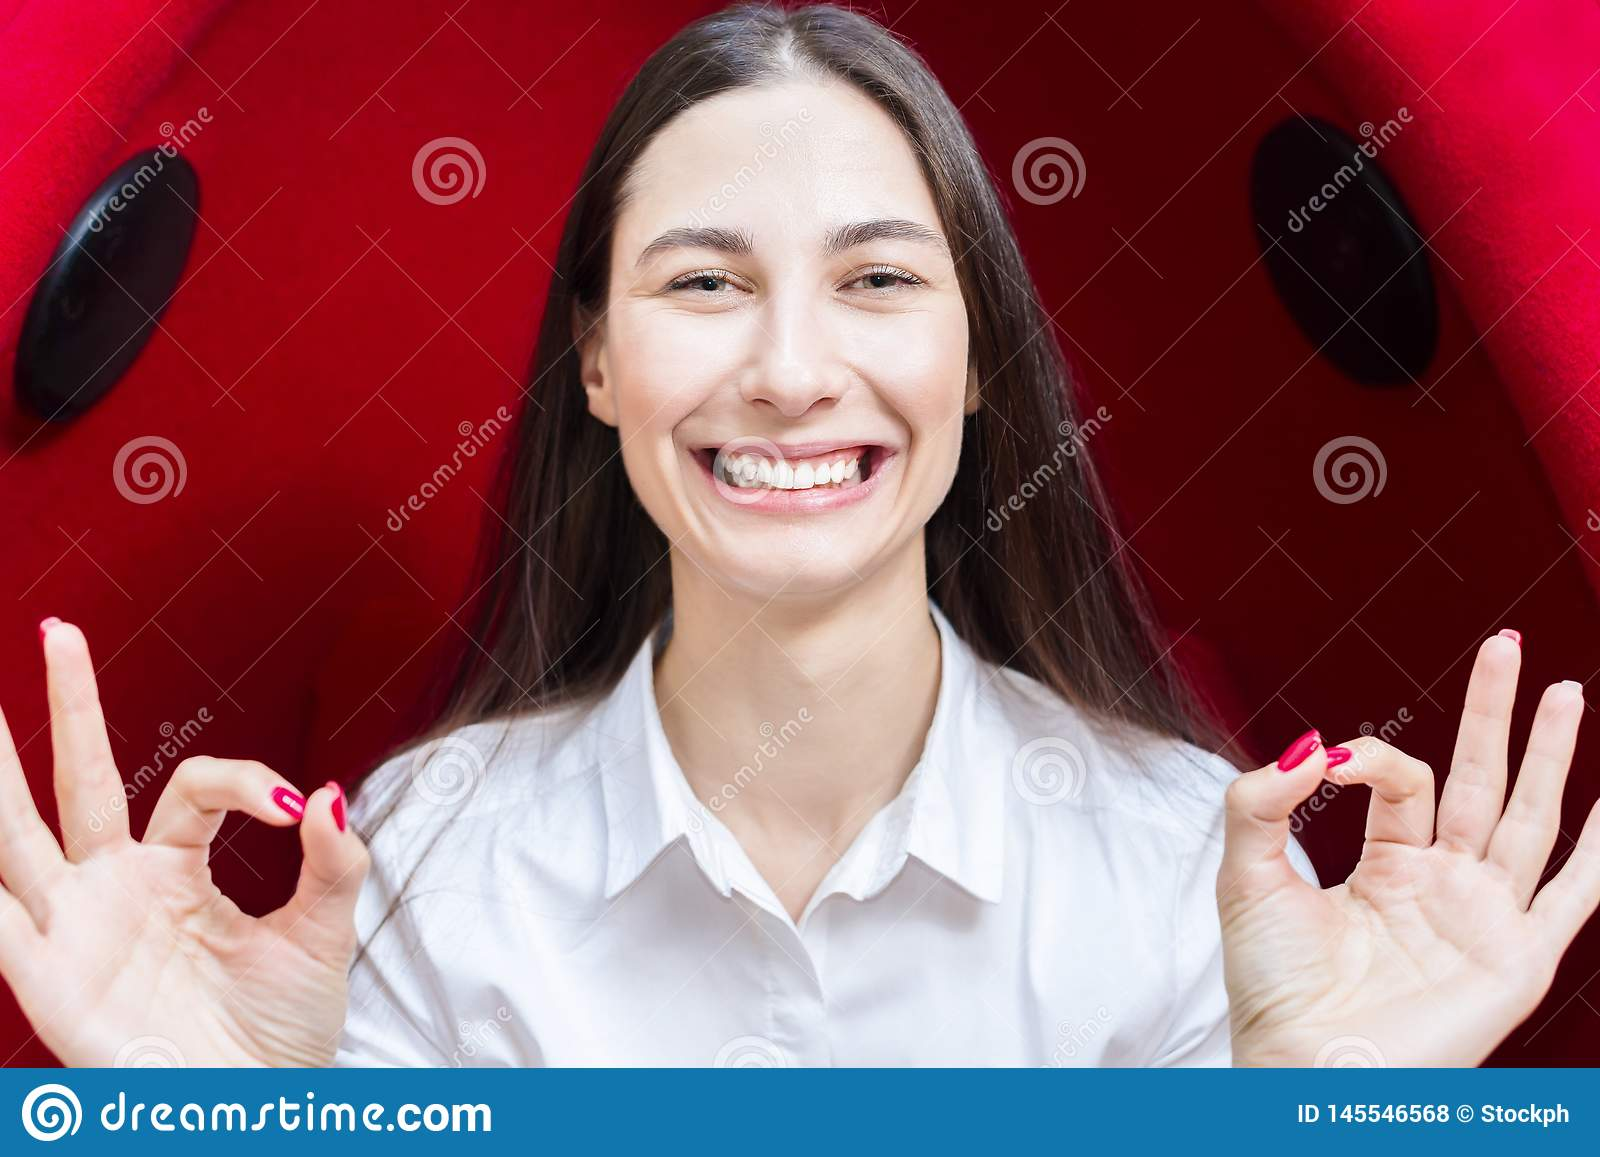 Happy young girl smiling. woman shows gesture everything is fine. red background.